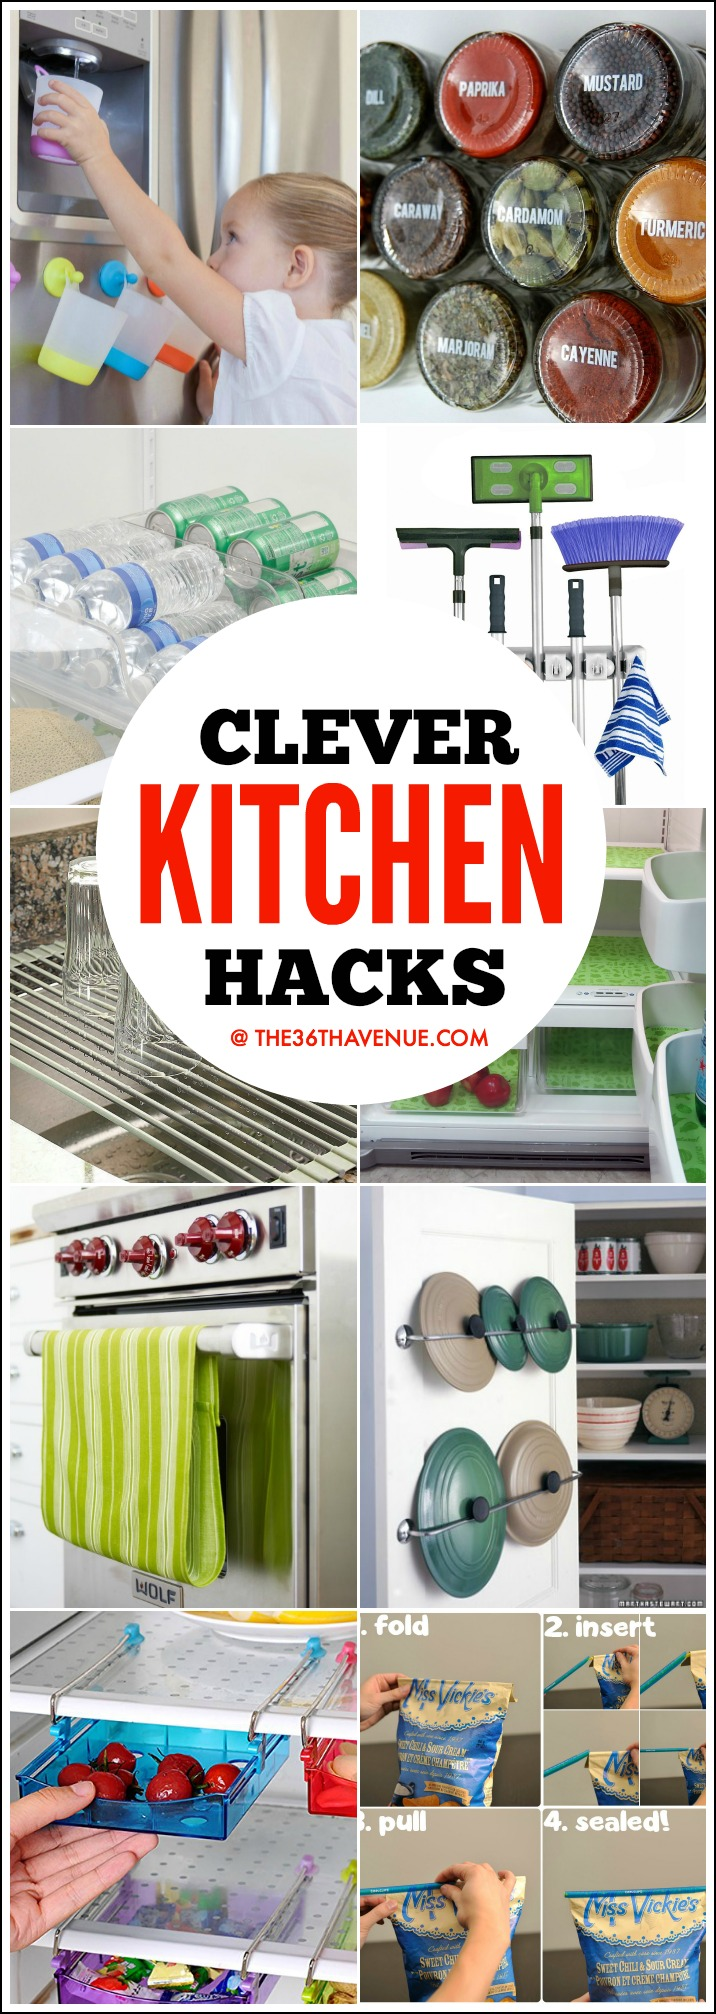 Clever Kitchen Hacks the36thavenue.com